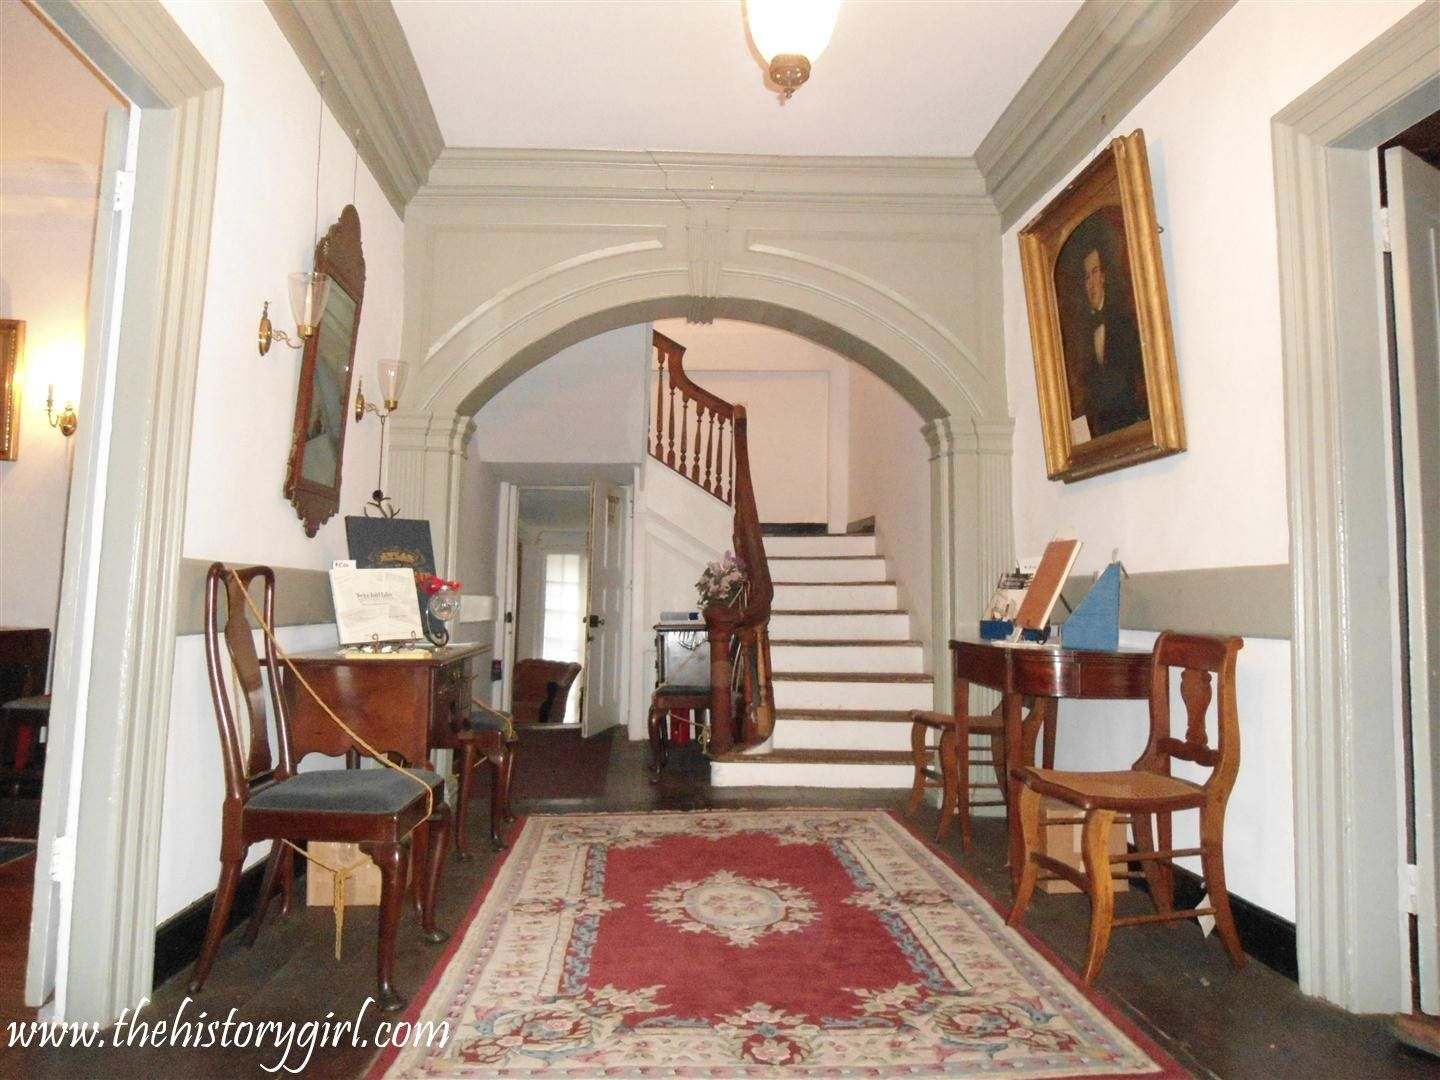 The Main Foyer Of The Historic Burrowes Mansion Located In Matawan Nj Built In 1723 This Georgian Style Mansion Was Built By J Home Sweet Home History Girl